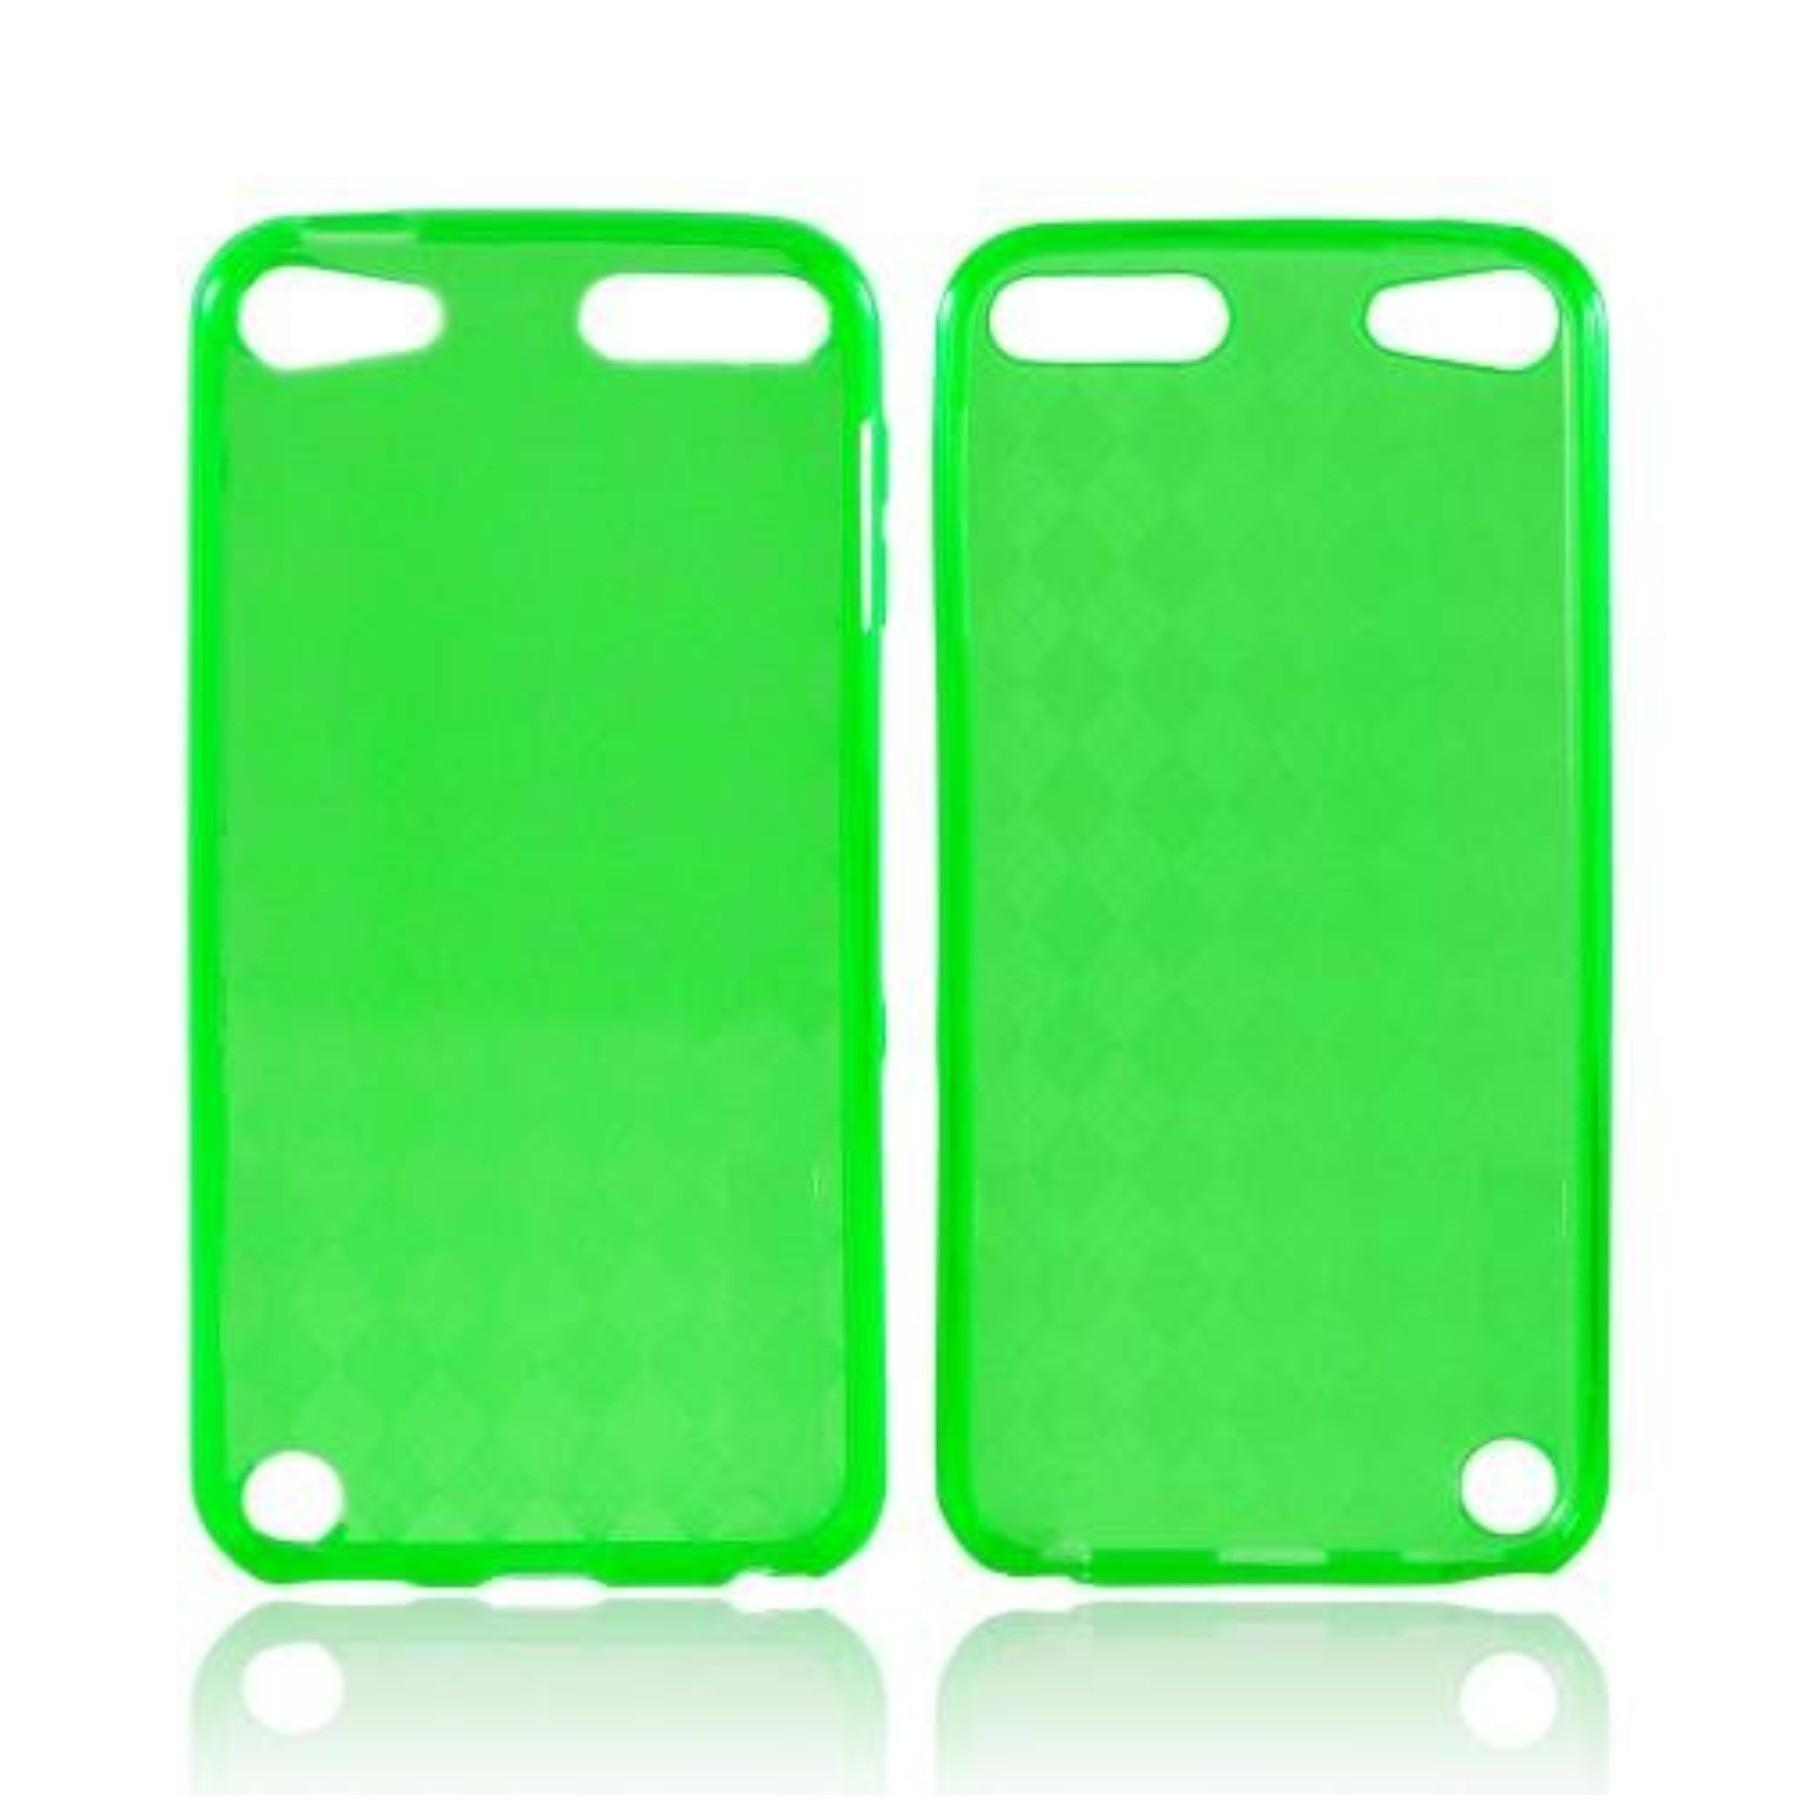 Green Apple Ipod Touch Tpu Gel Case Cover Anti Slip